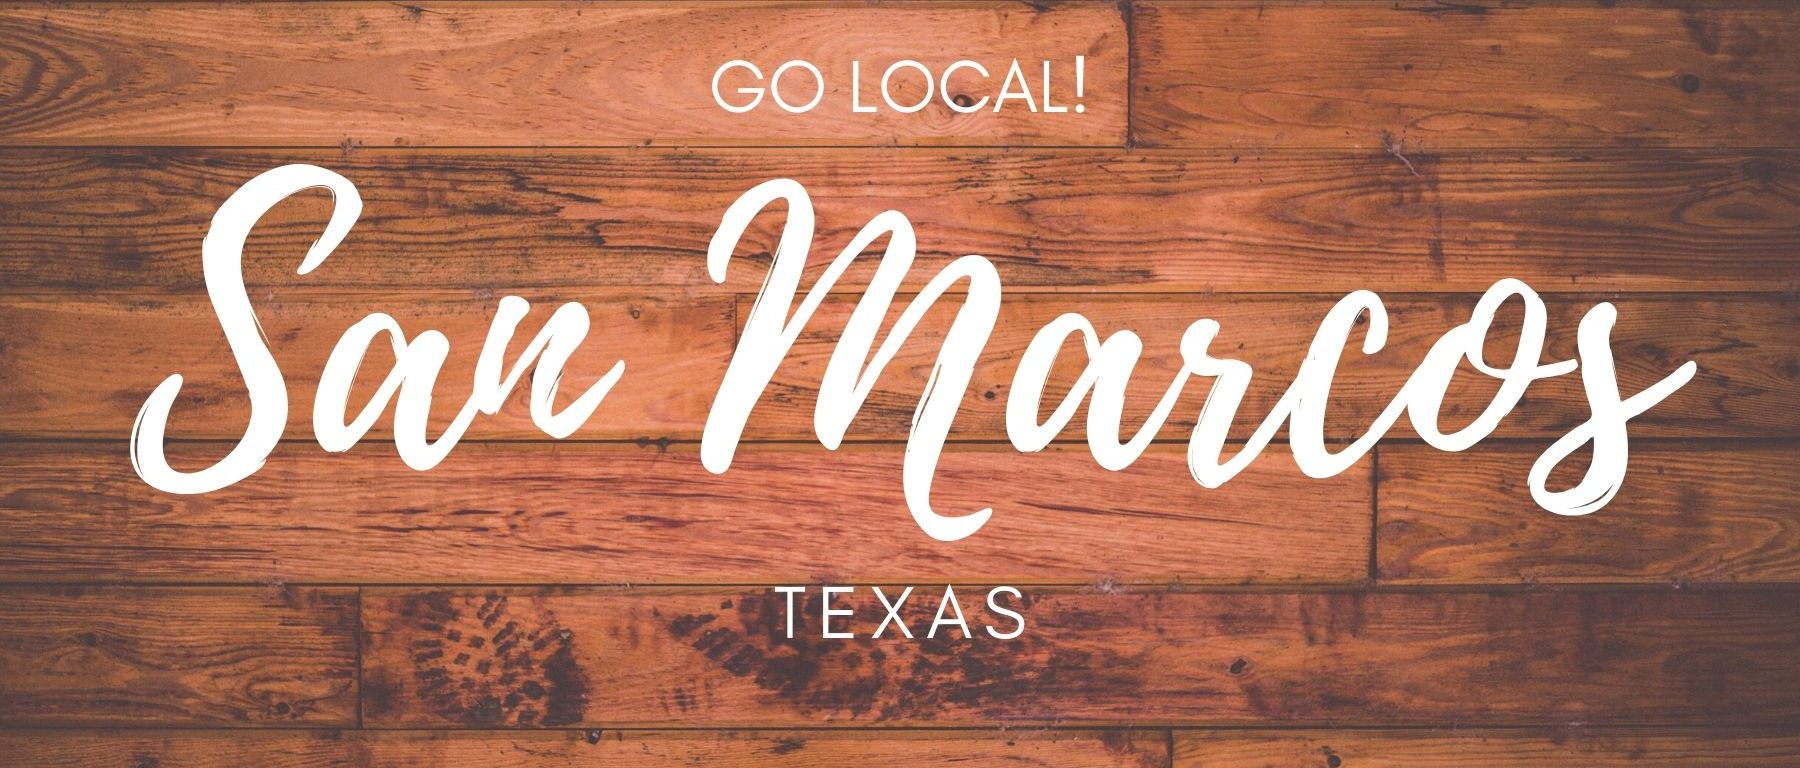 """Wooden background with white lettering saying """"Go local! San Marcos Texas"""""""